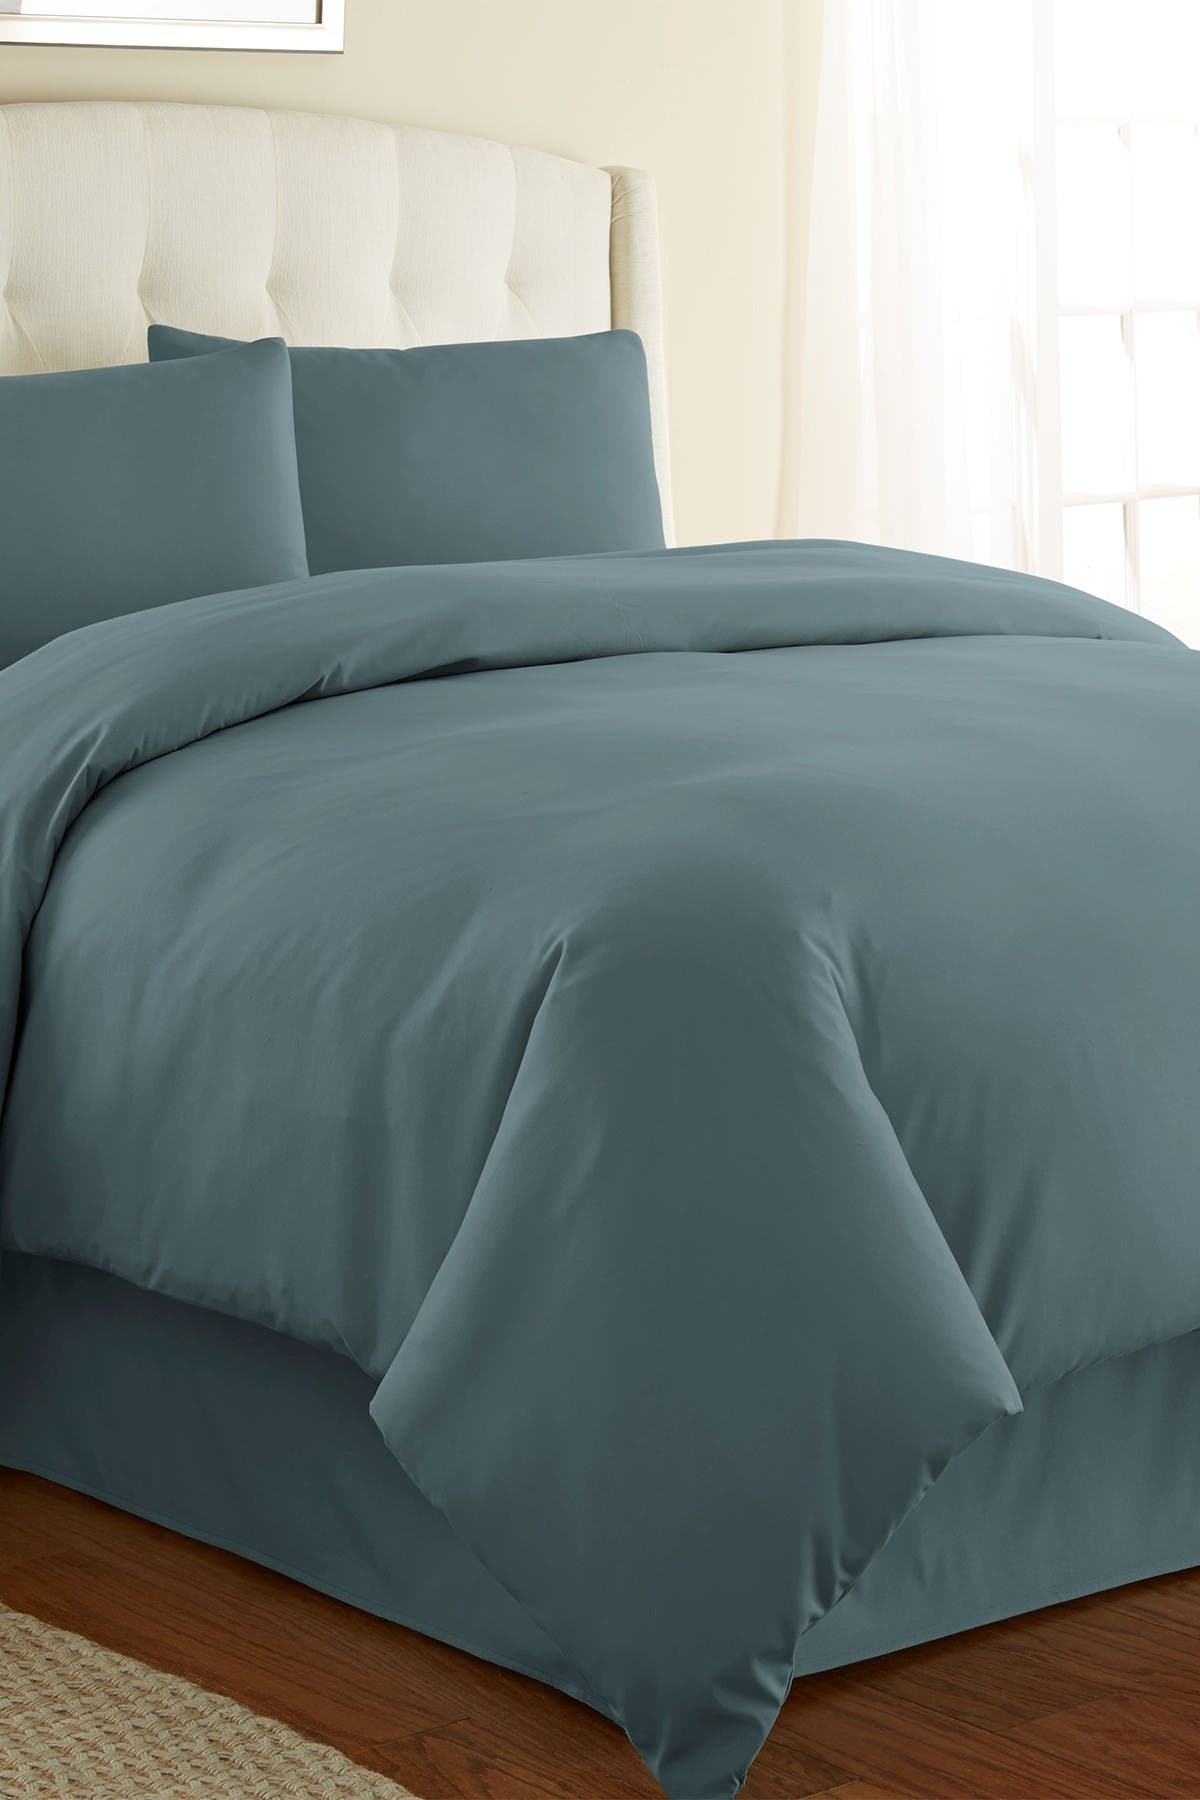 Image of SOUTHSHORE FINE LINENS Full/Queen Southshore Fine Linens Vilano Springs Duvet Cover Sets - Steel Blue